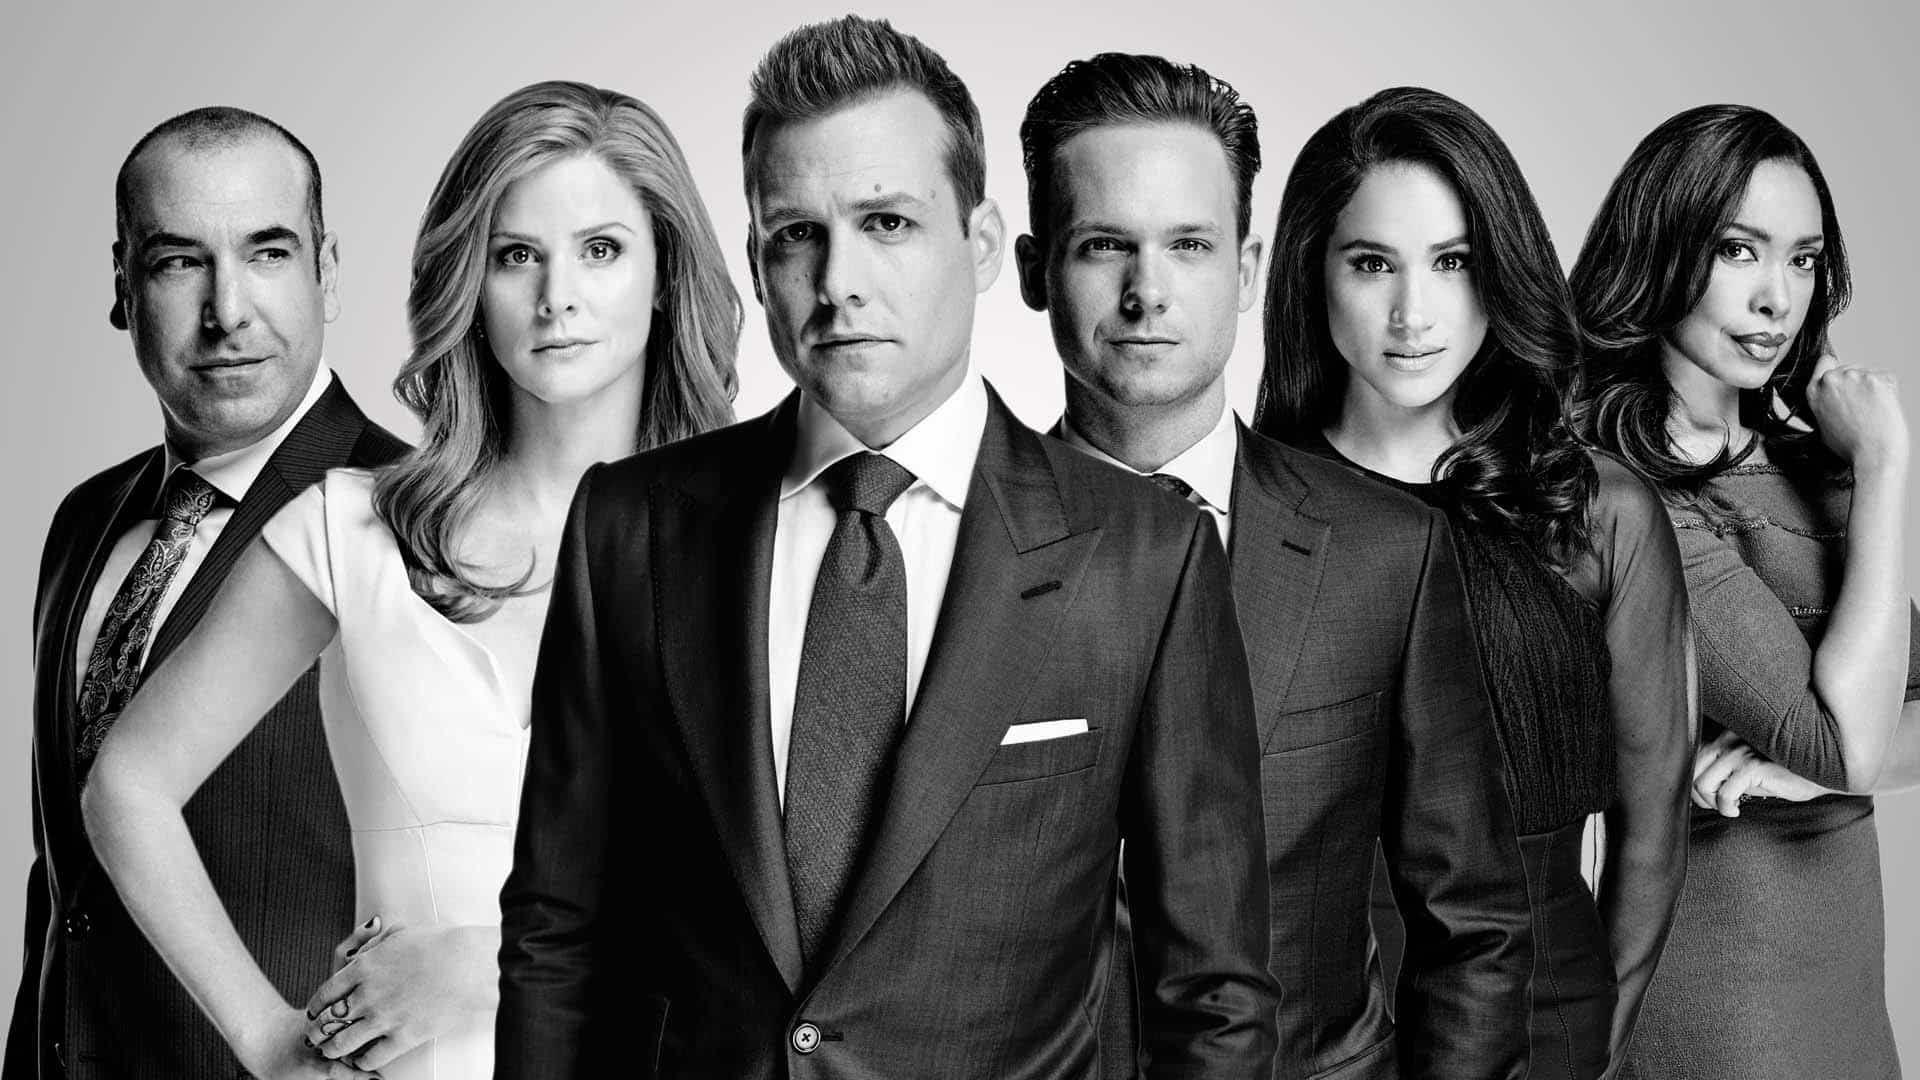 Watch Suits Online 6 Free Paid Streaming Options